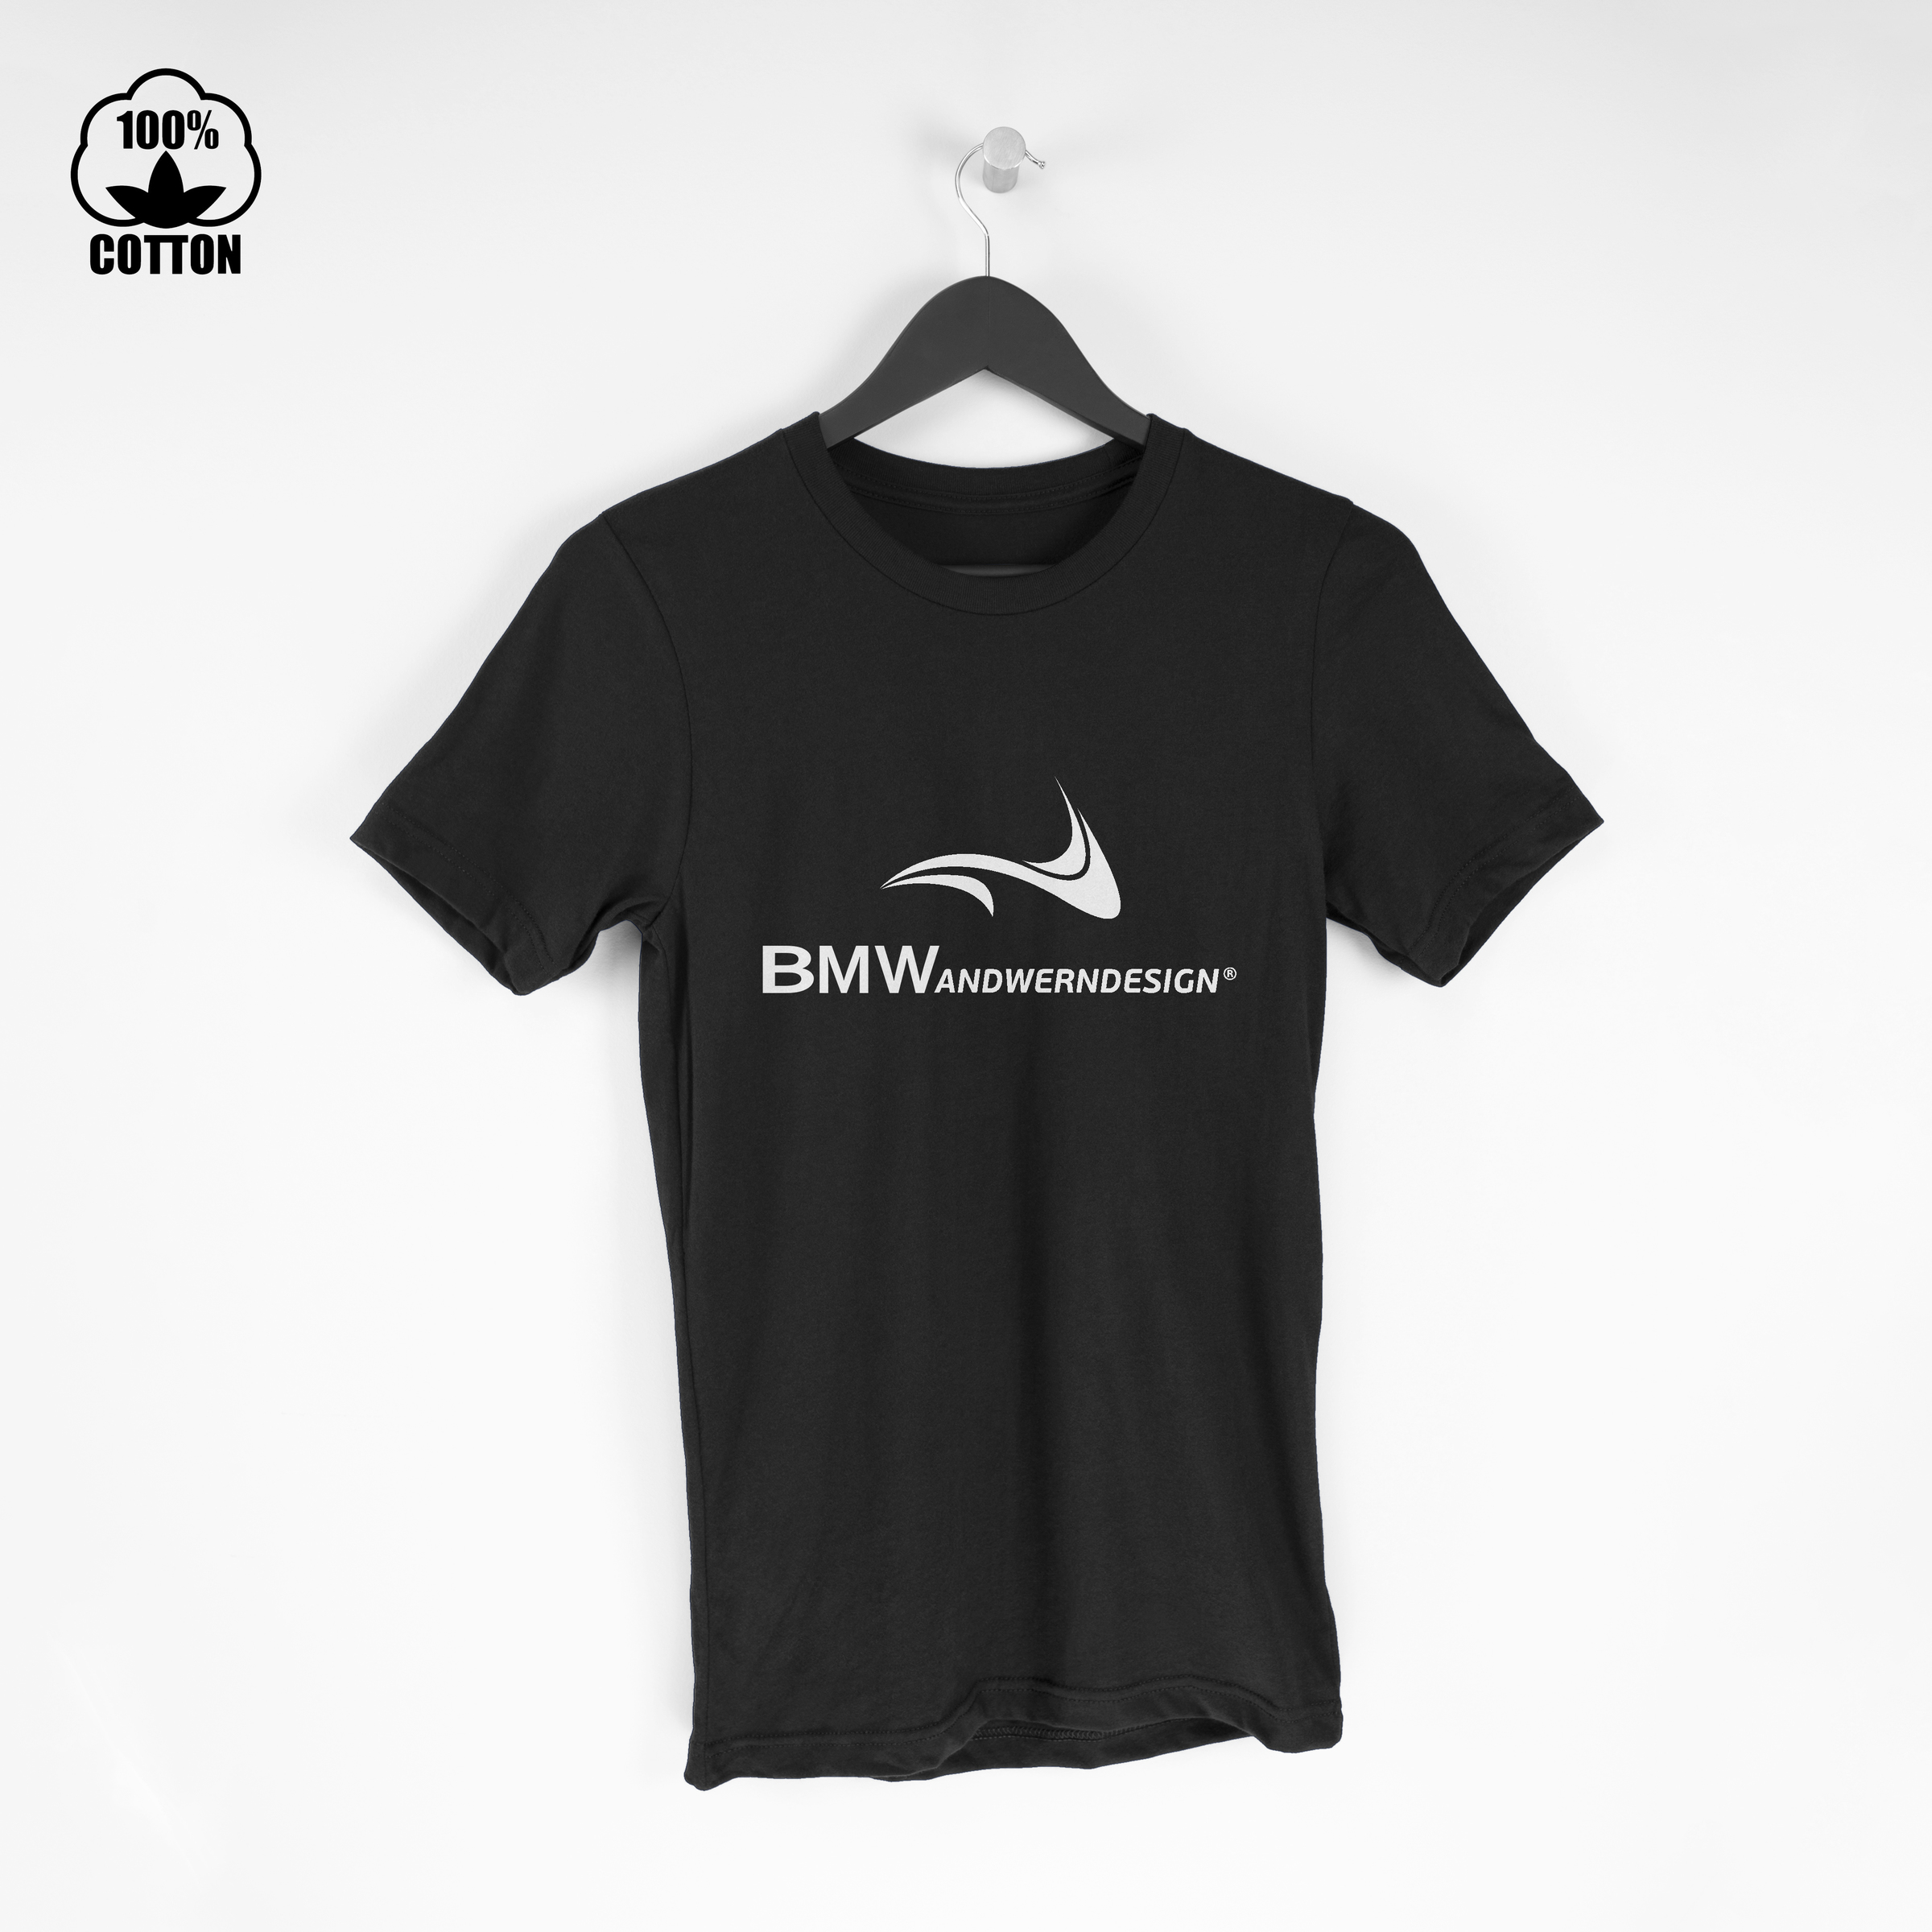 Bmw Andwerndesign Logo T-Shirt New Design Short Sleeeve.jpg